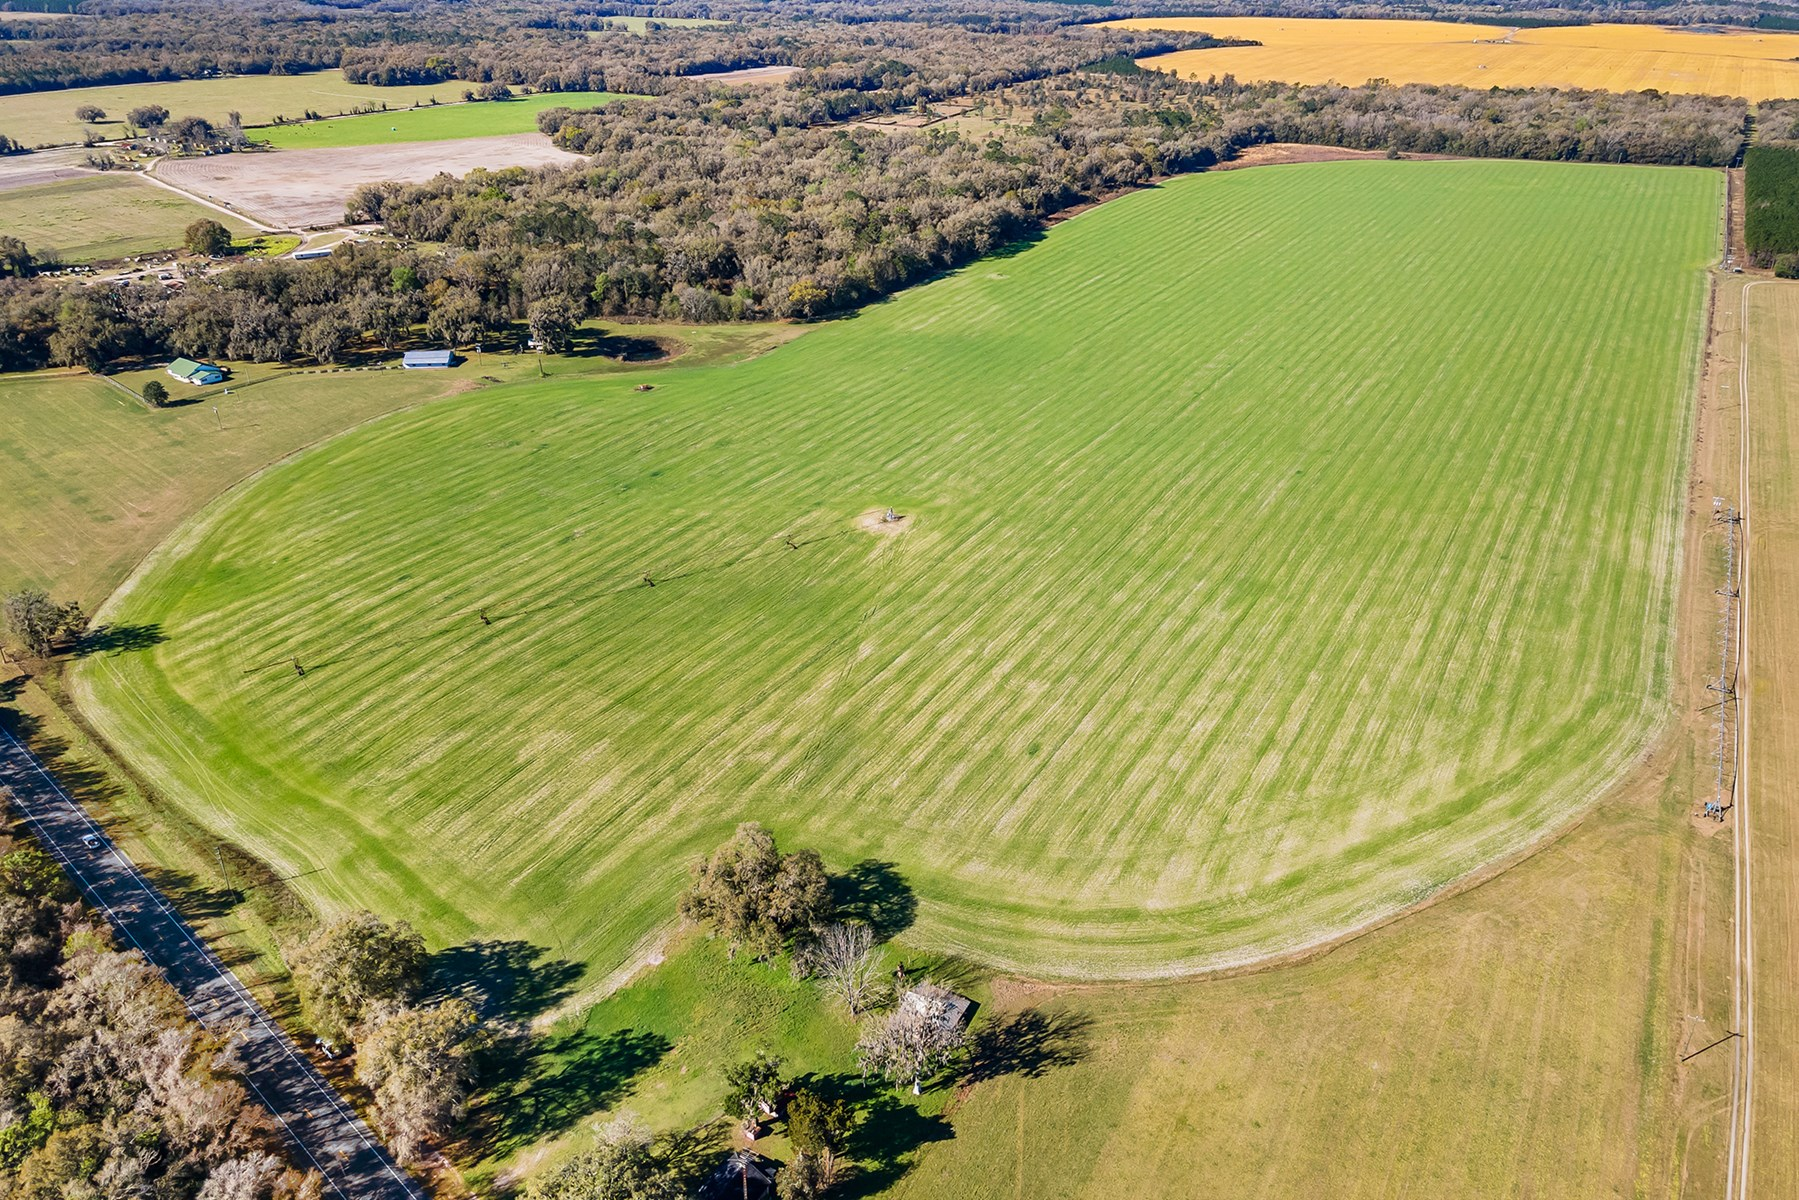 OLD TOWN, FL! FAMILY HOMESTEAD ON 127 ACRES OF PASTURELAND!